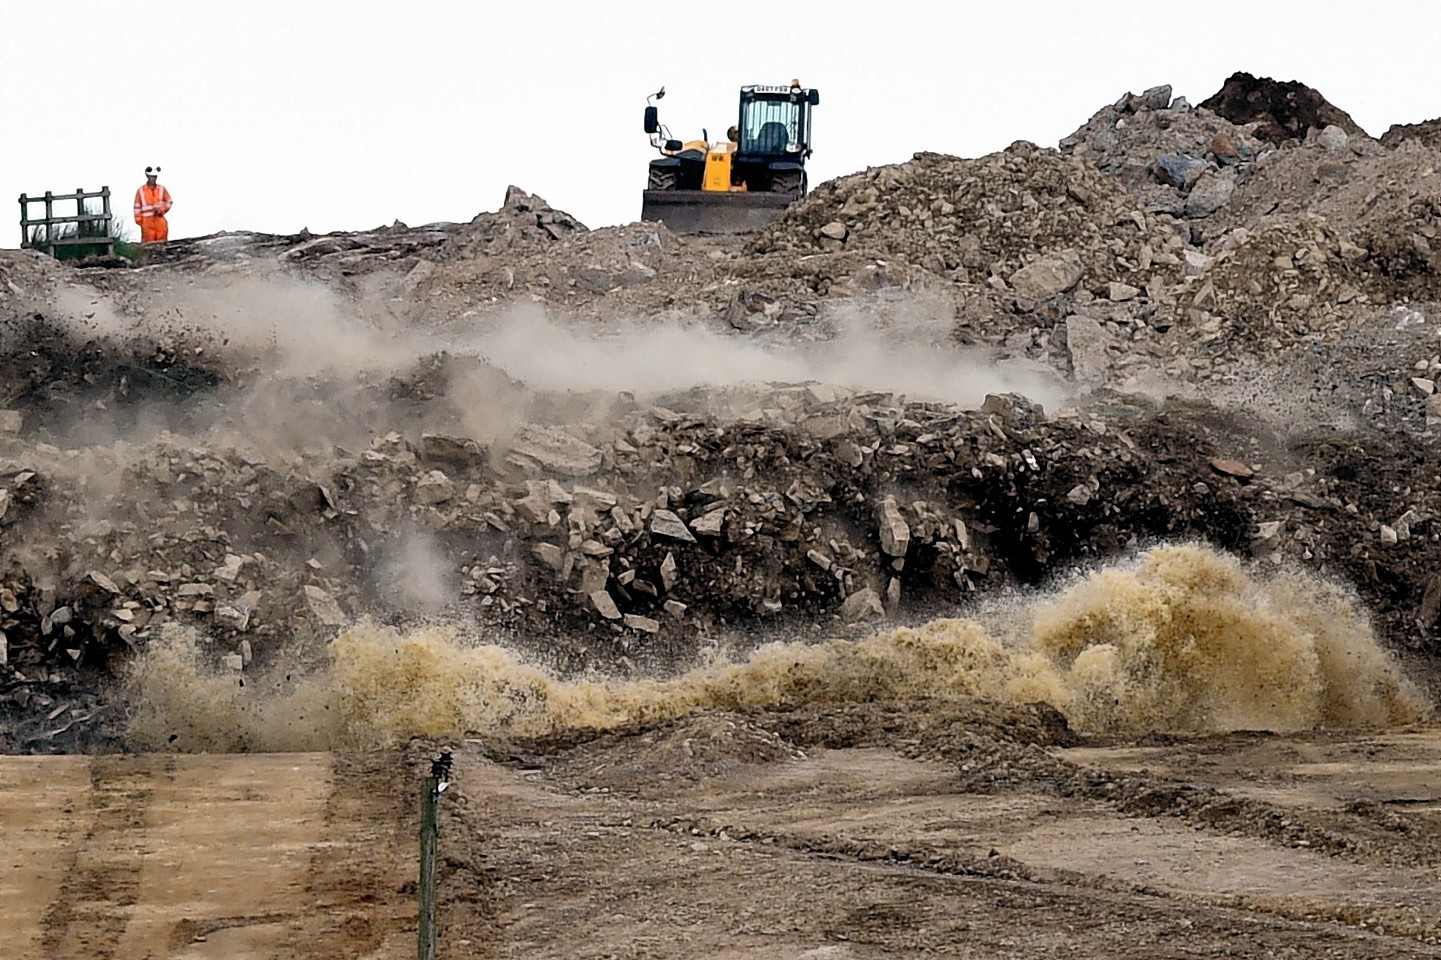 Blasting work has started at one of the AWPR sites